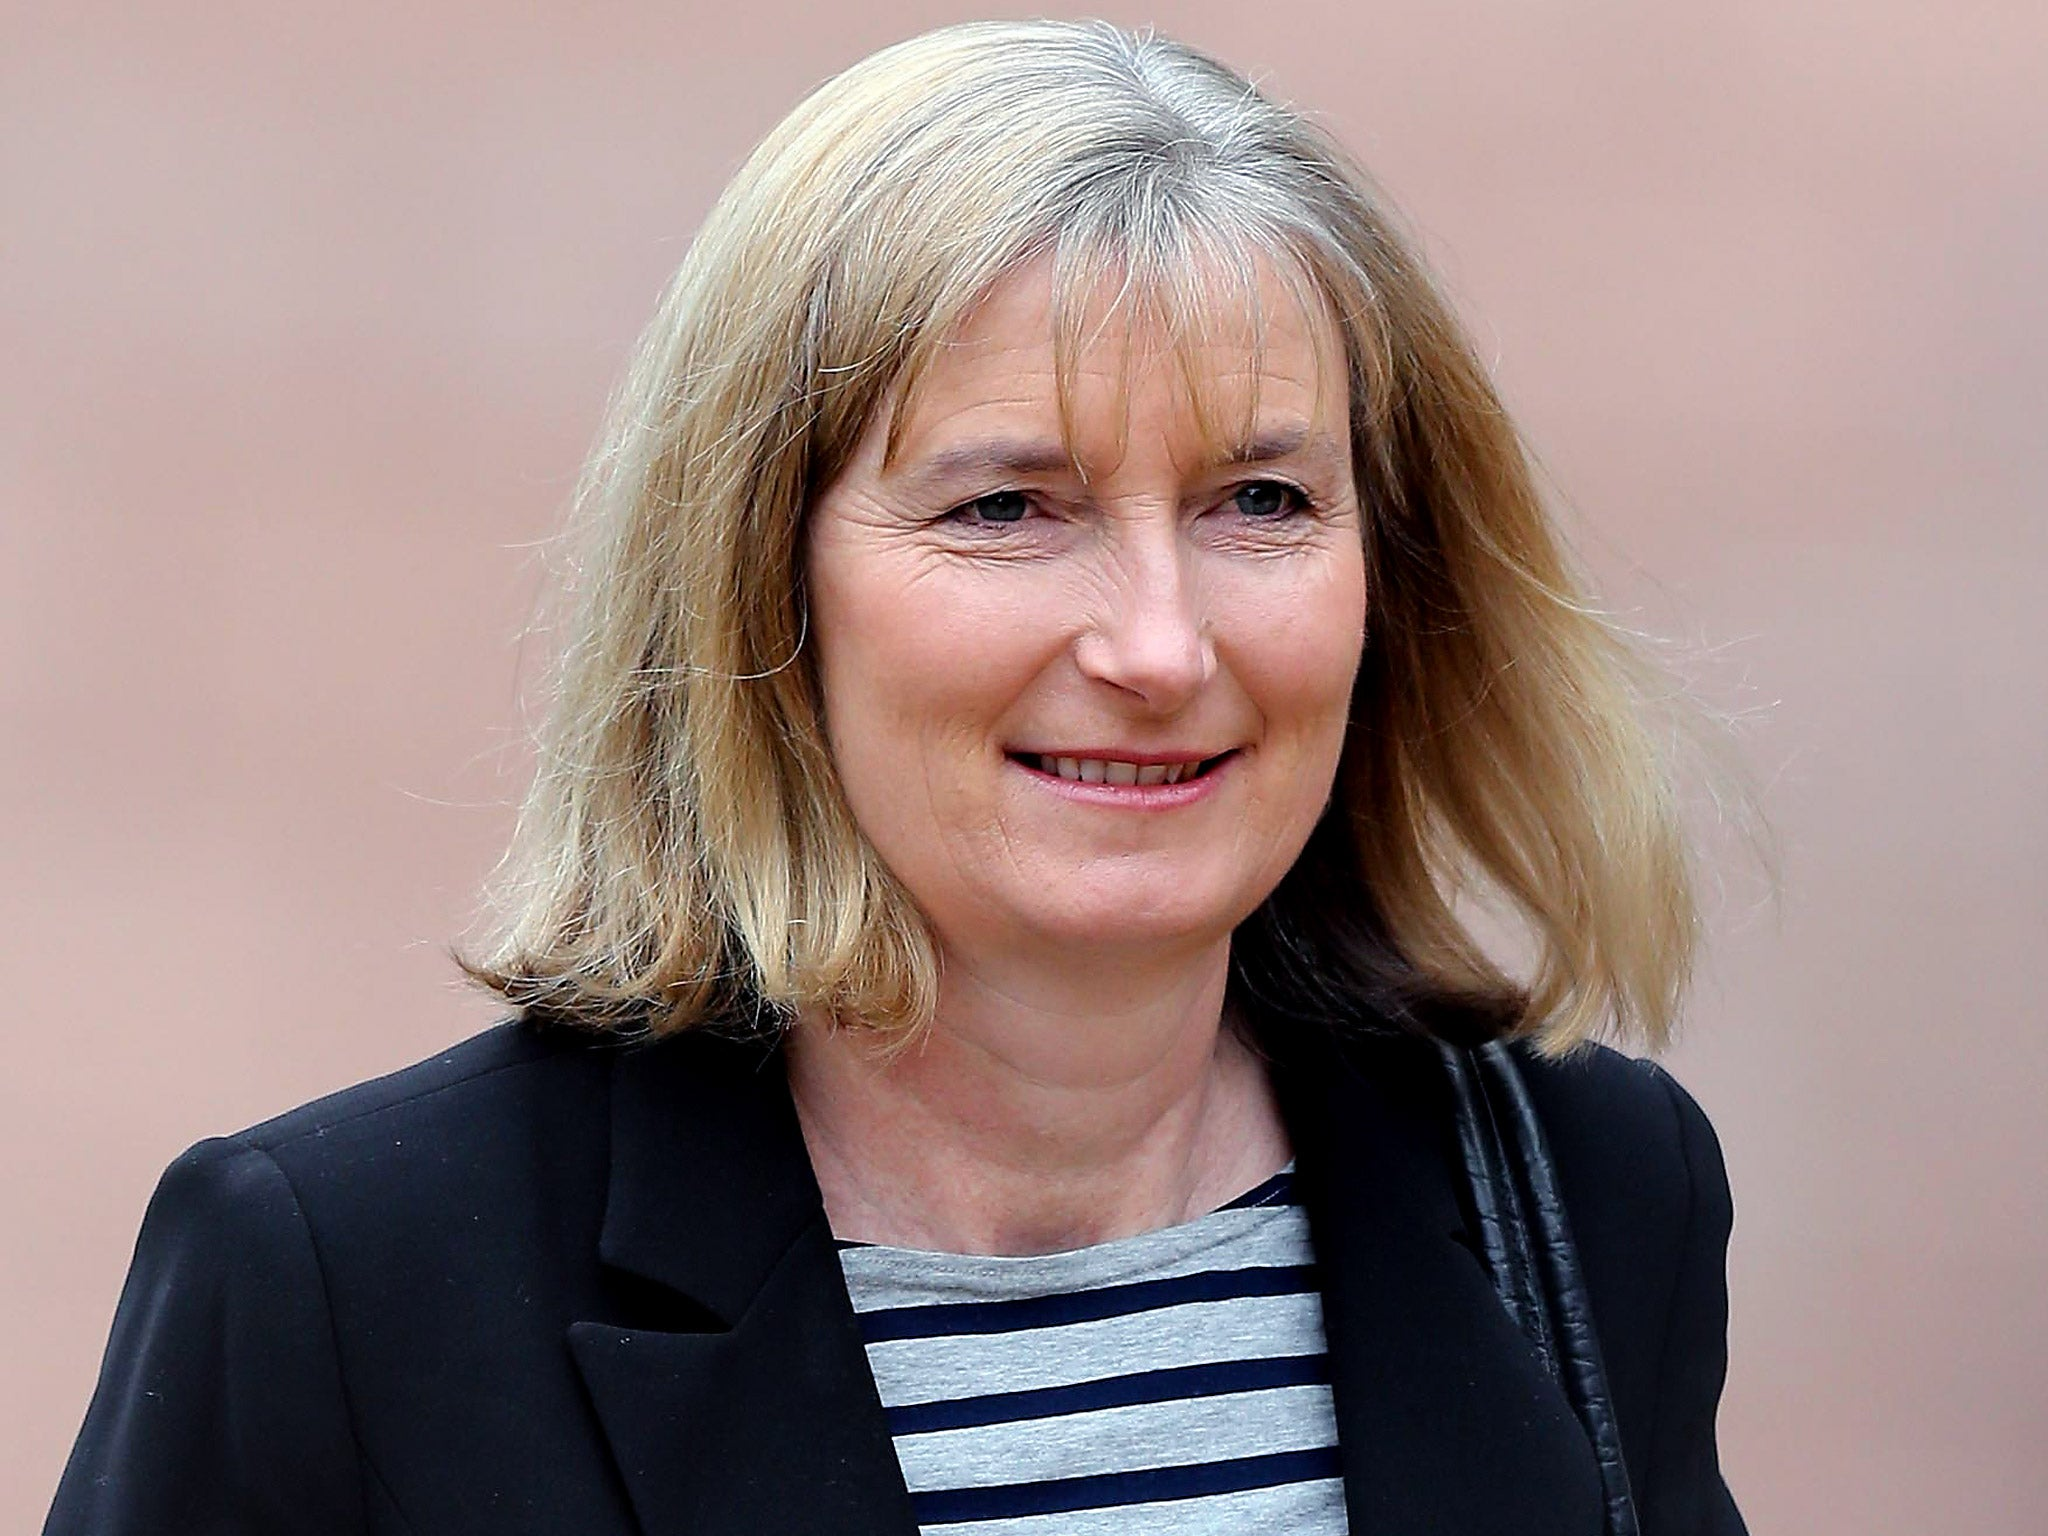 Tory rebel Sarah Wollaston warns of 'Blukip' activists in her own party amid speculation over new resignations